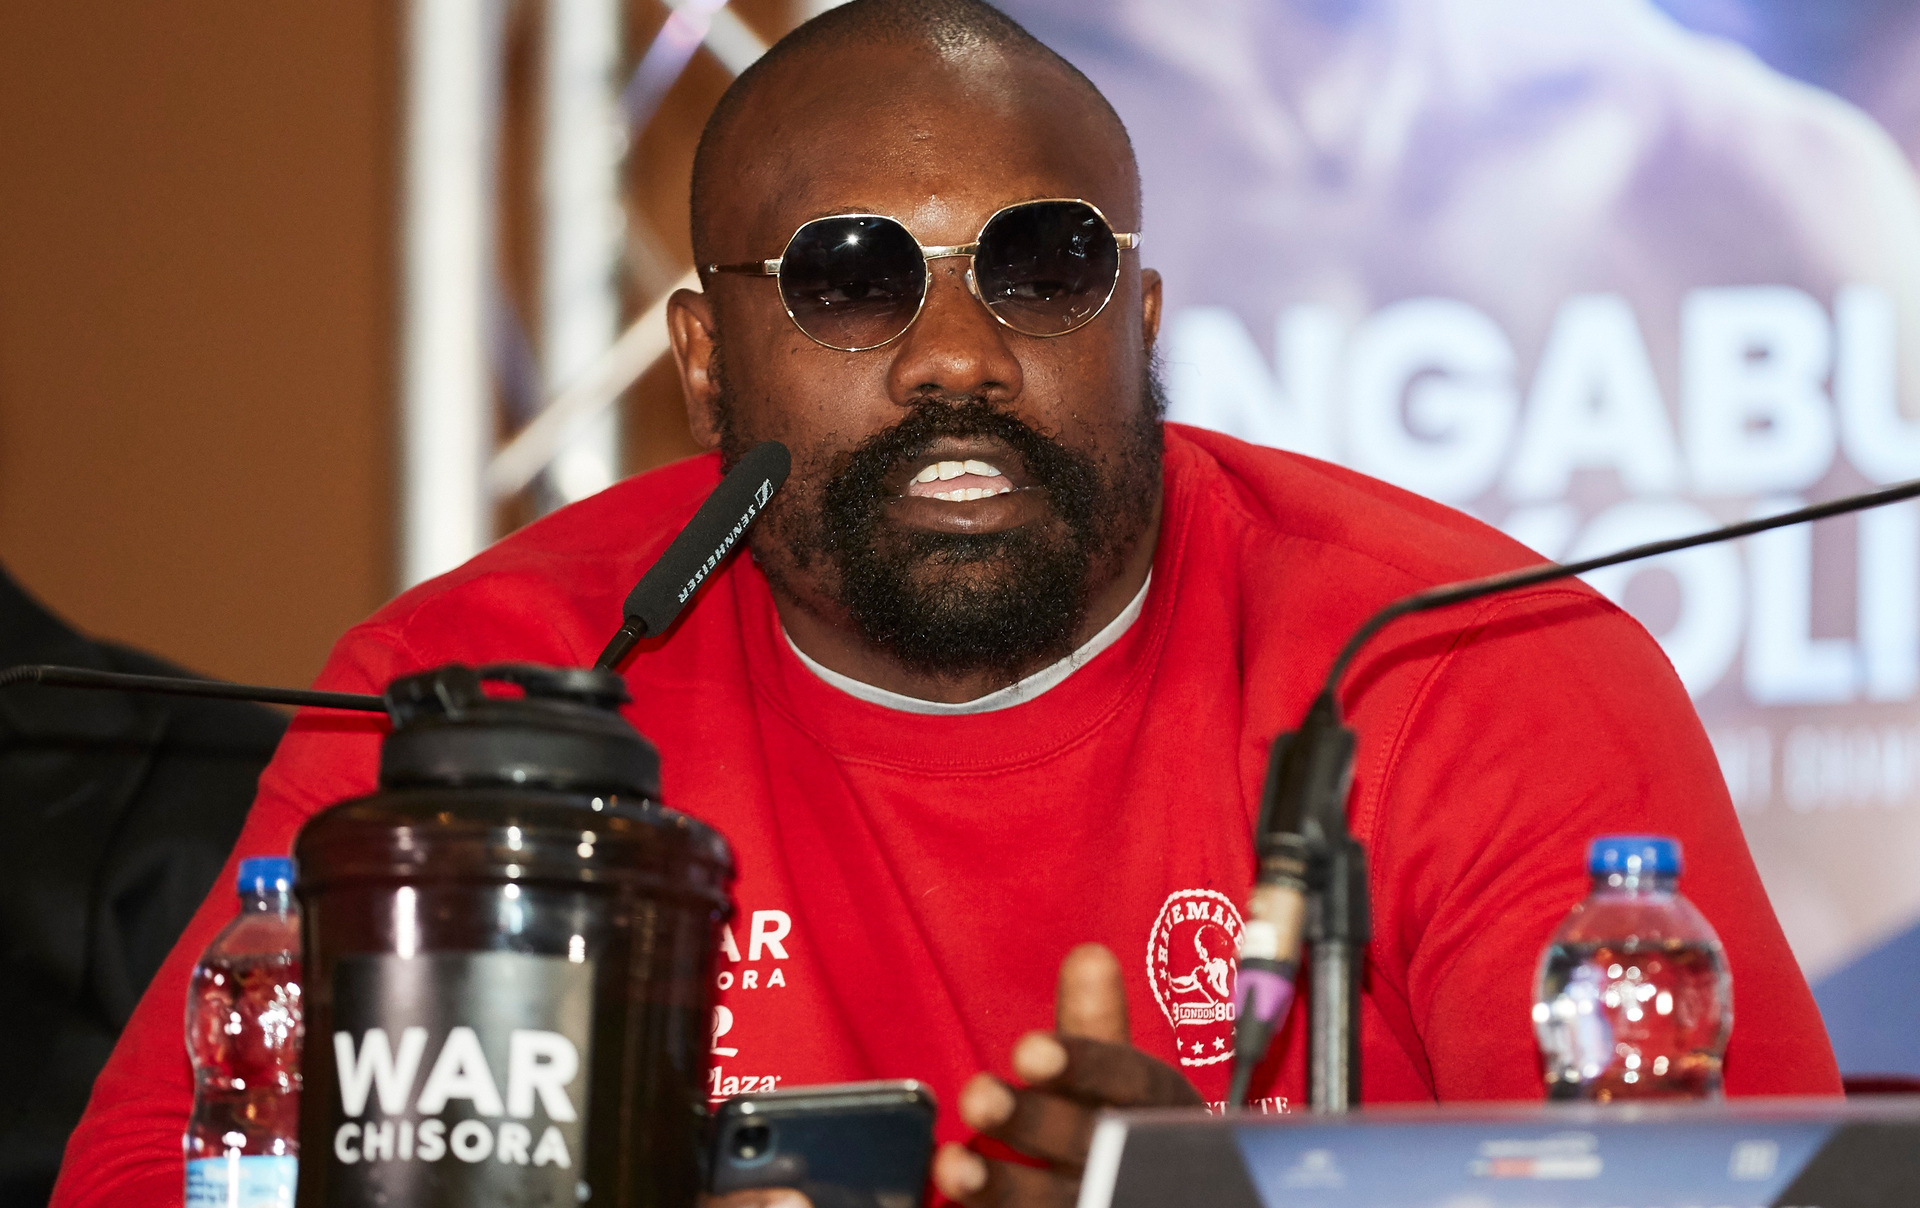 Boxing: Joseph Parker's opponent Dereck Chisora goes on foul-mouthed rant about not being main event